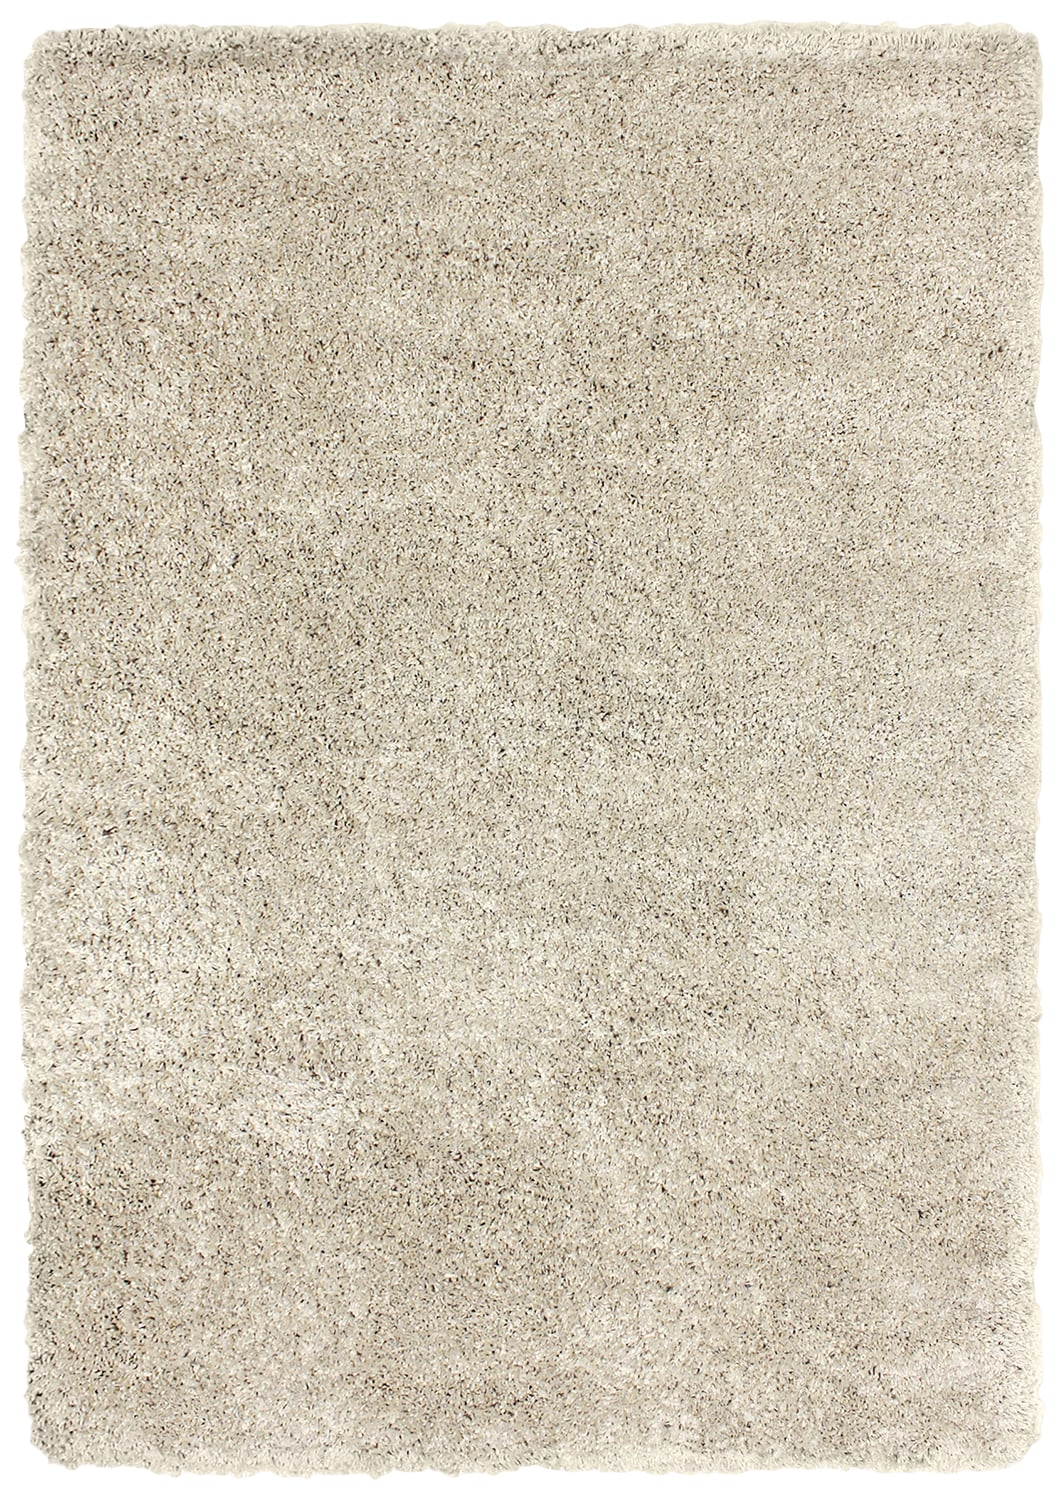 Loft Linen-Coloured Shag Area Rug – 5' x 8'